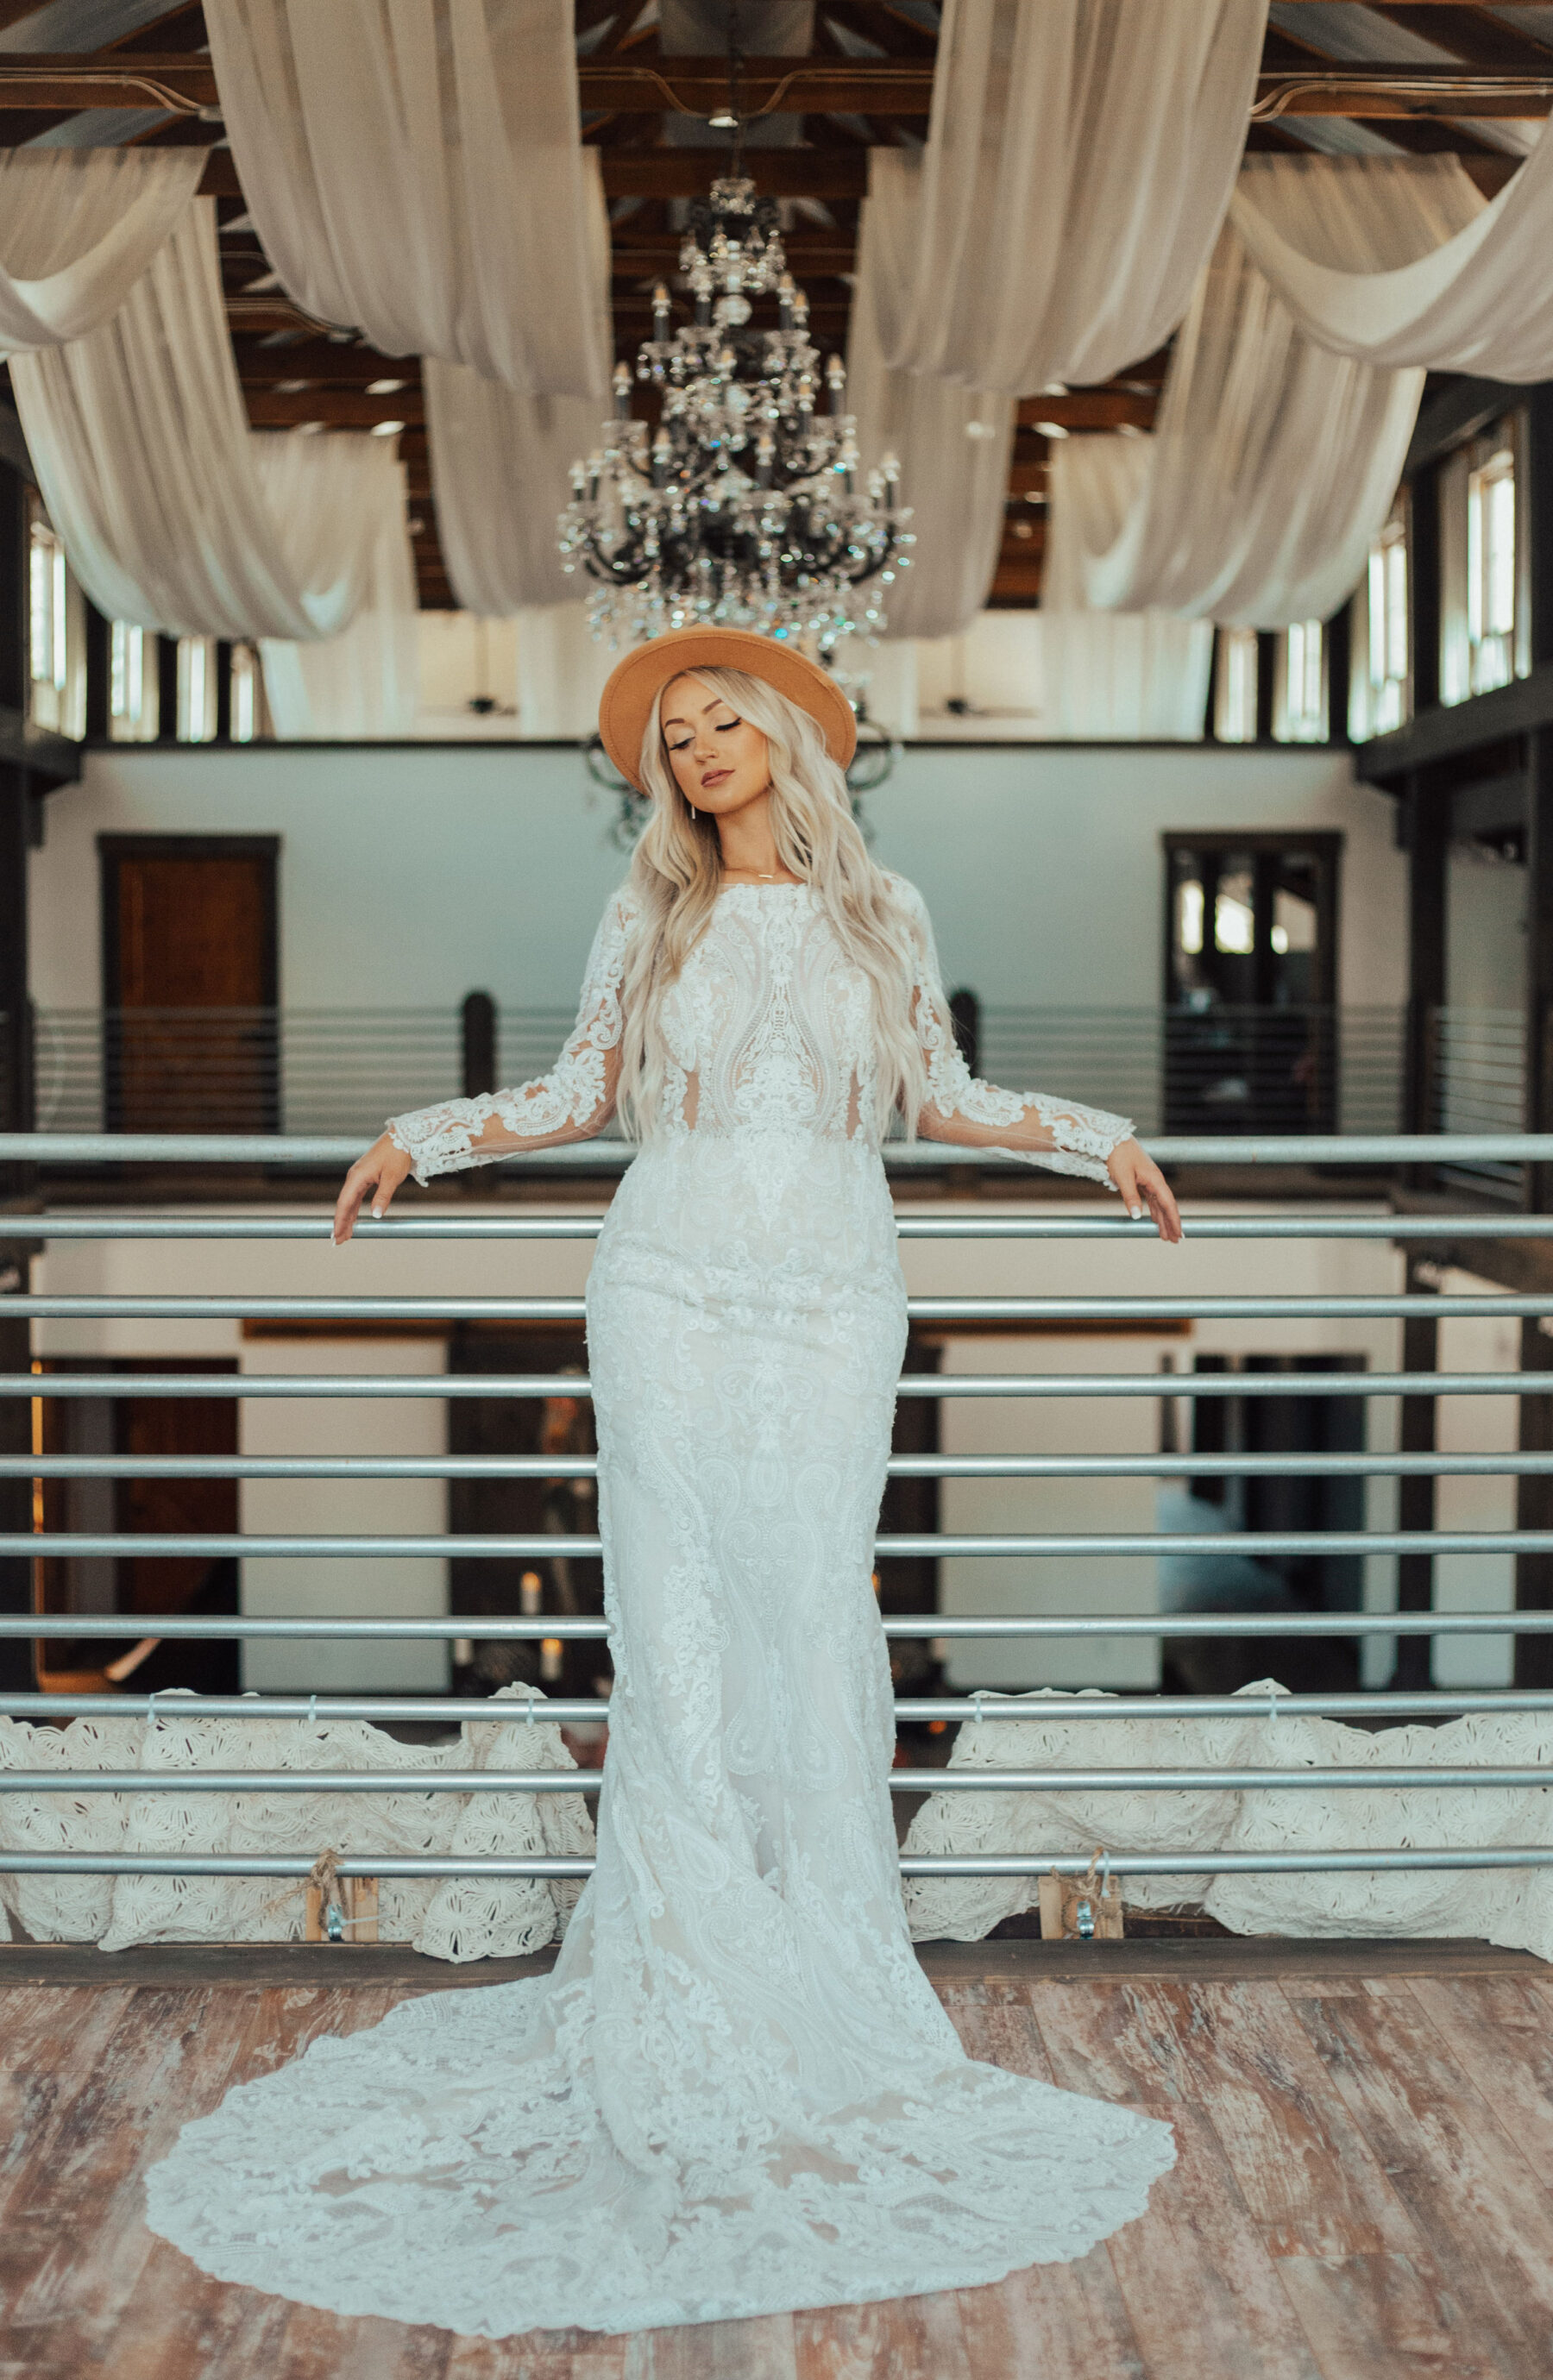 Bright Bohemian Photo Shoot from Ina J Designs